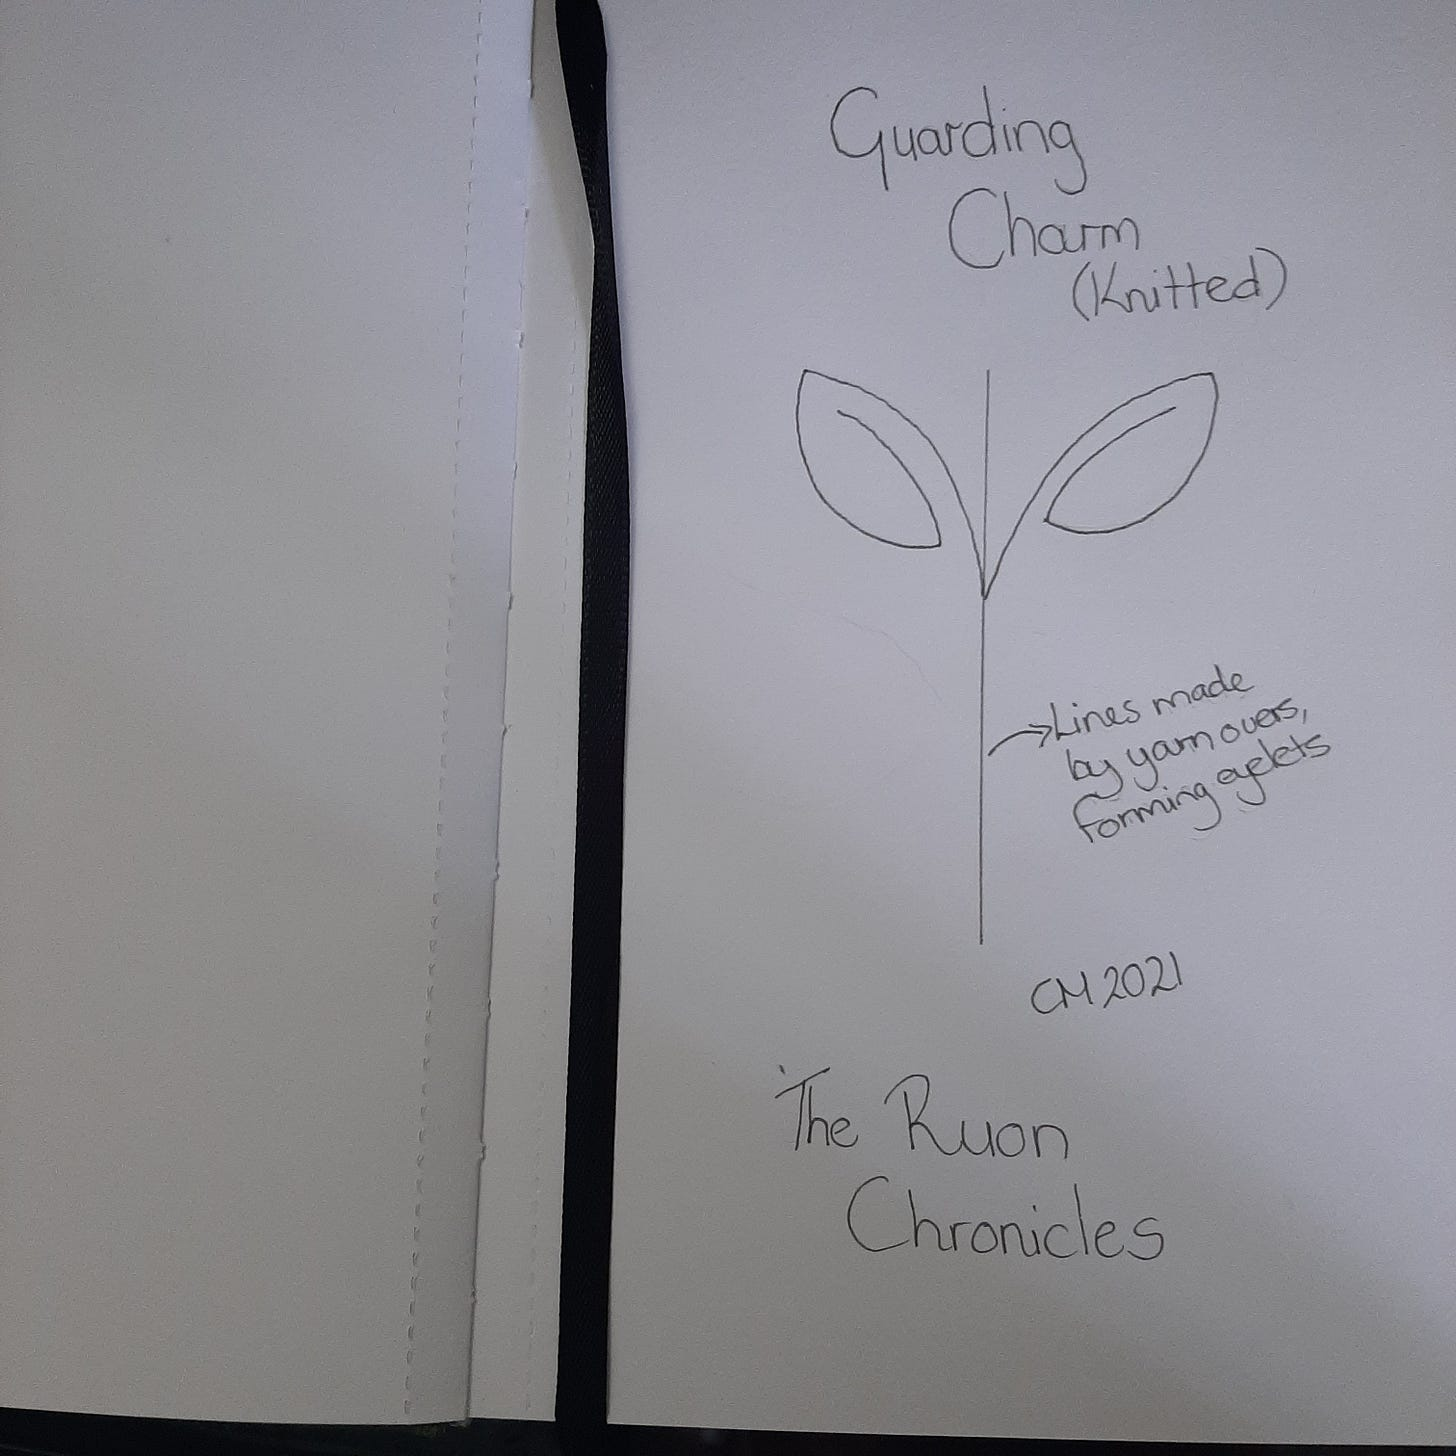 Drawing showing guardian charm design